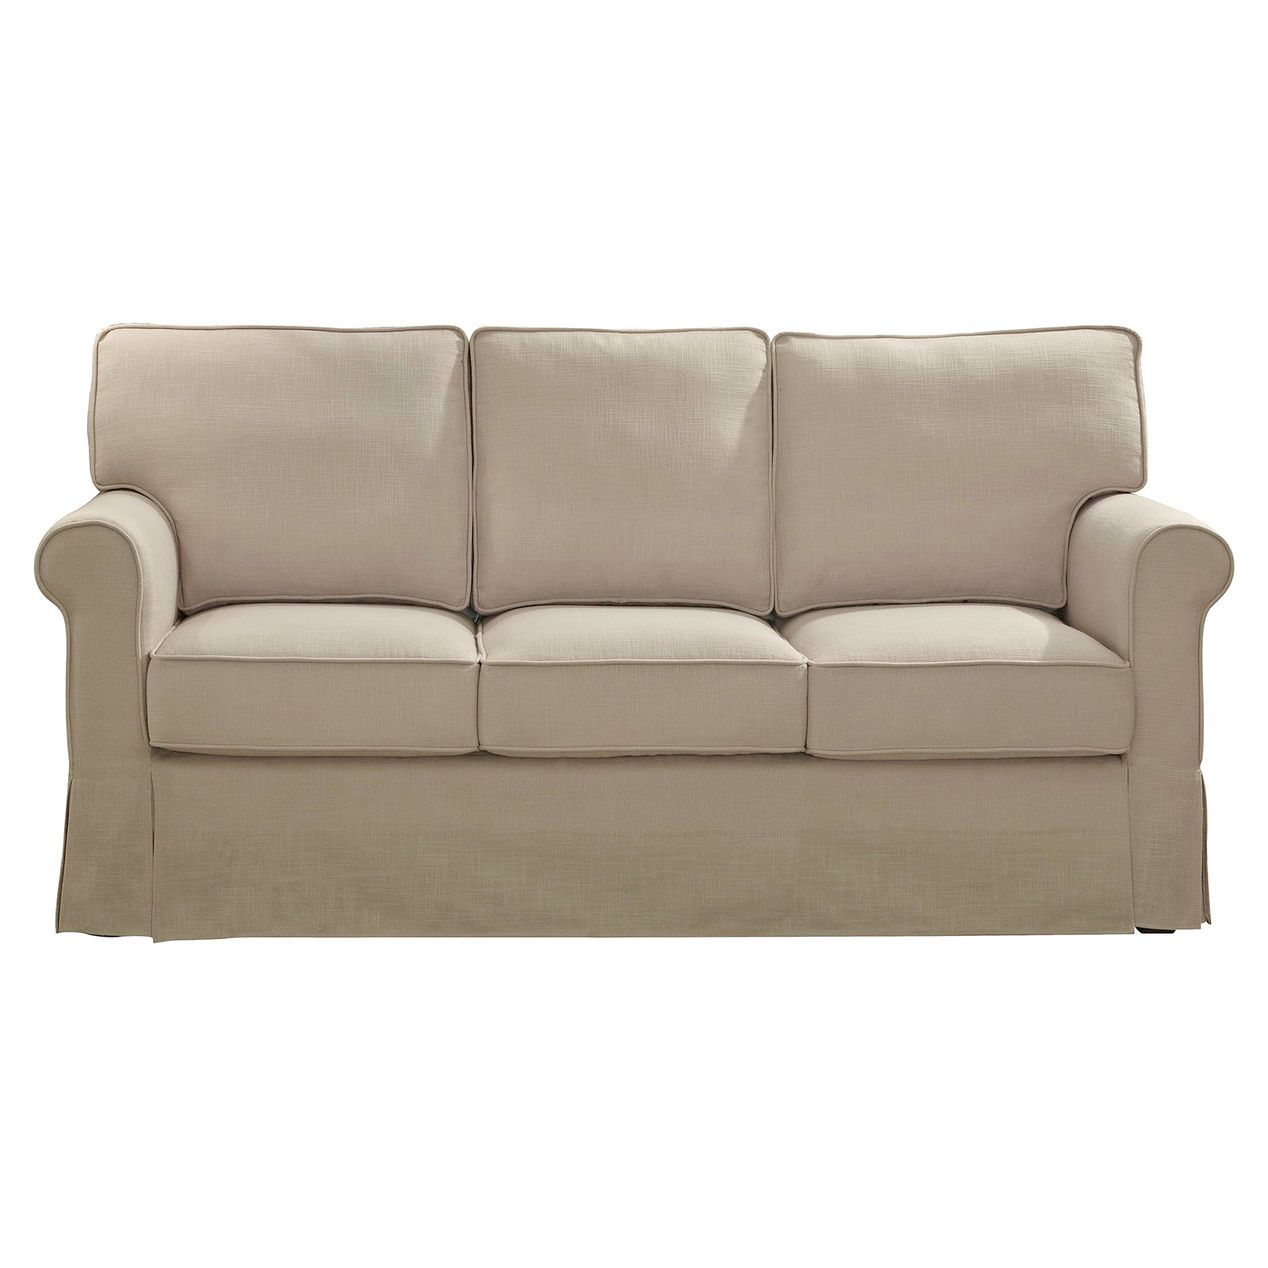 Savannah Natural Linen Sofa With Slip Cover At Home